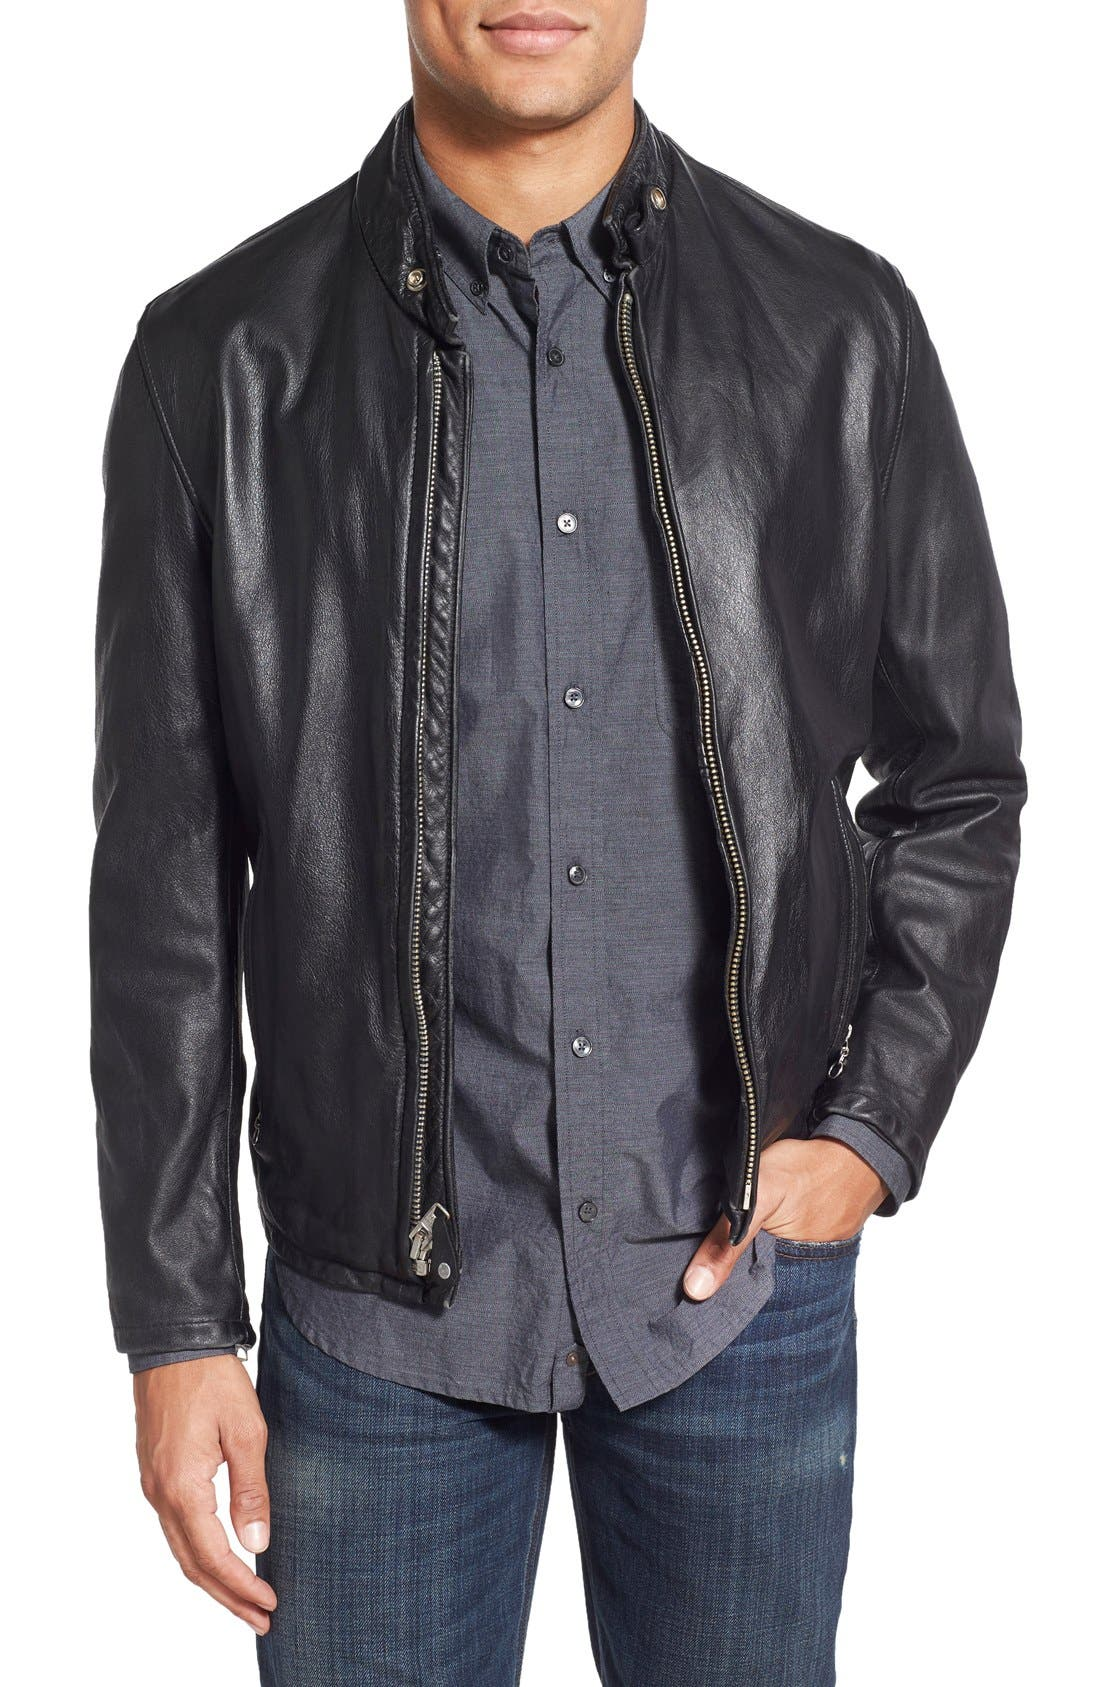 Schott NYC Café Racer Slim Fit Leather Jacket